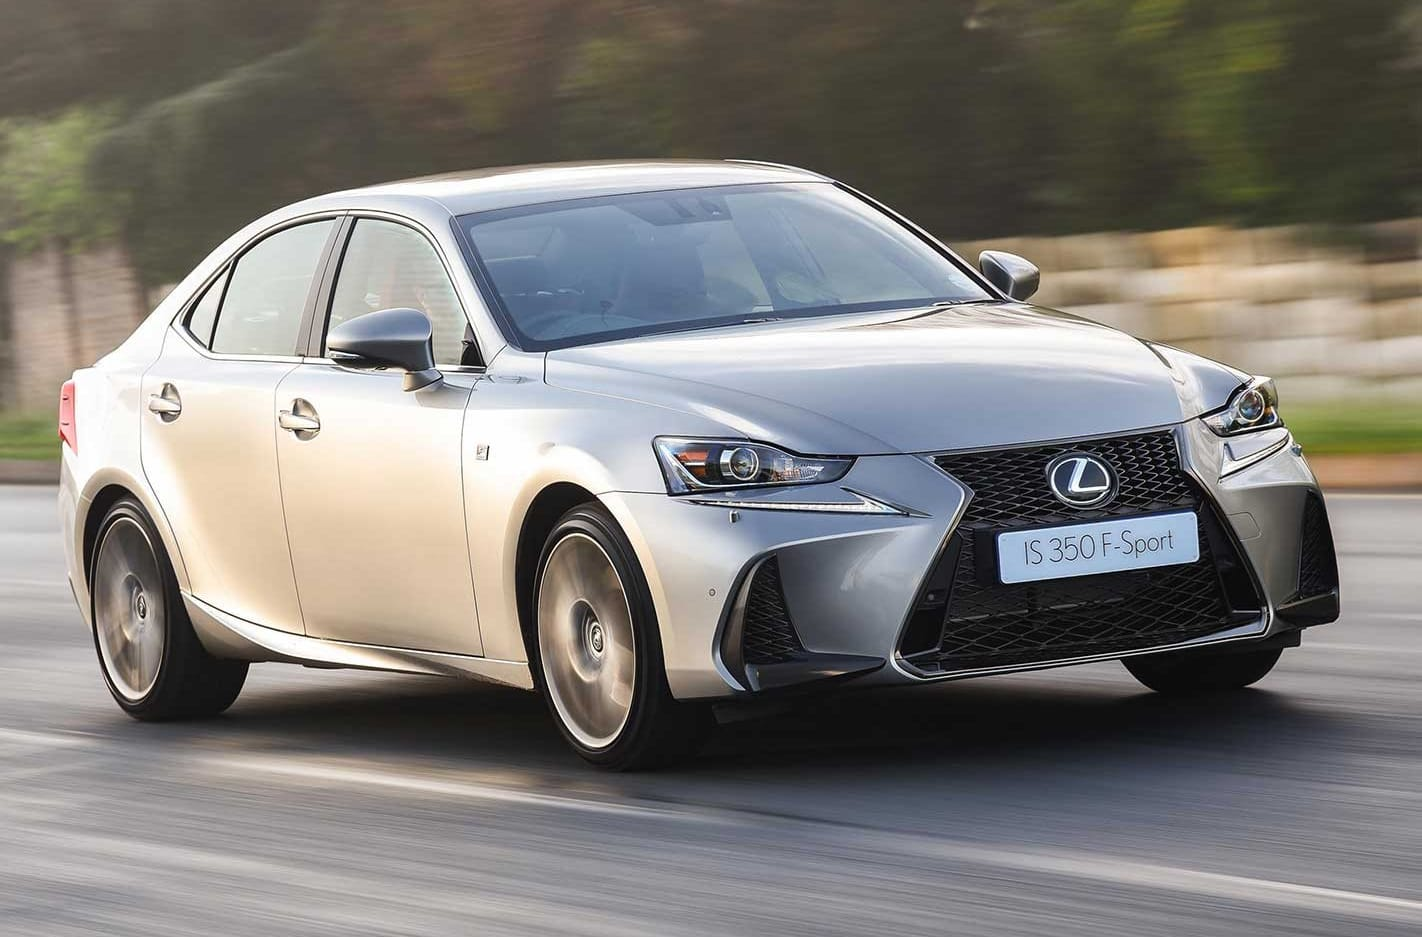 2019 Lexus IS350 F Sport quick performance review